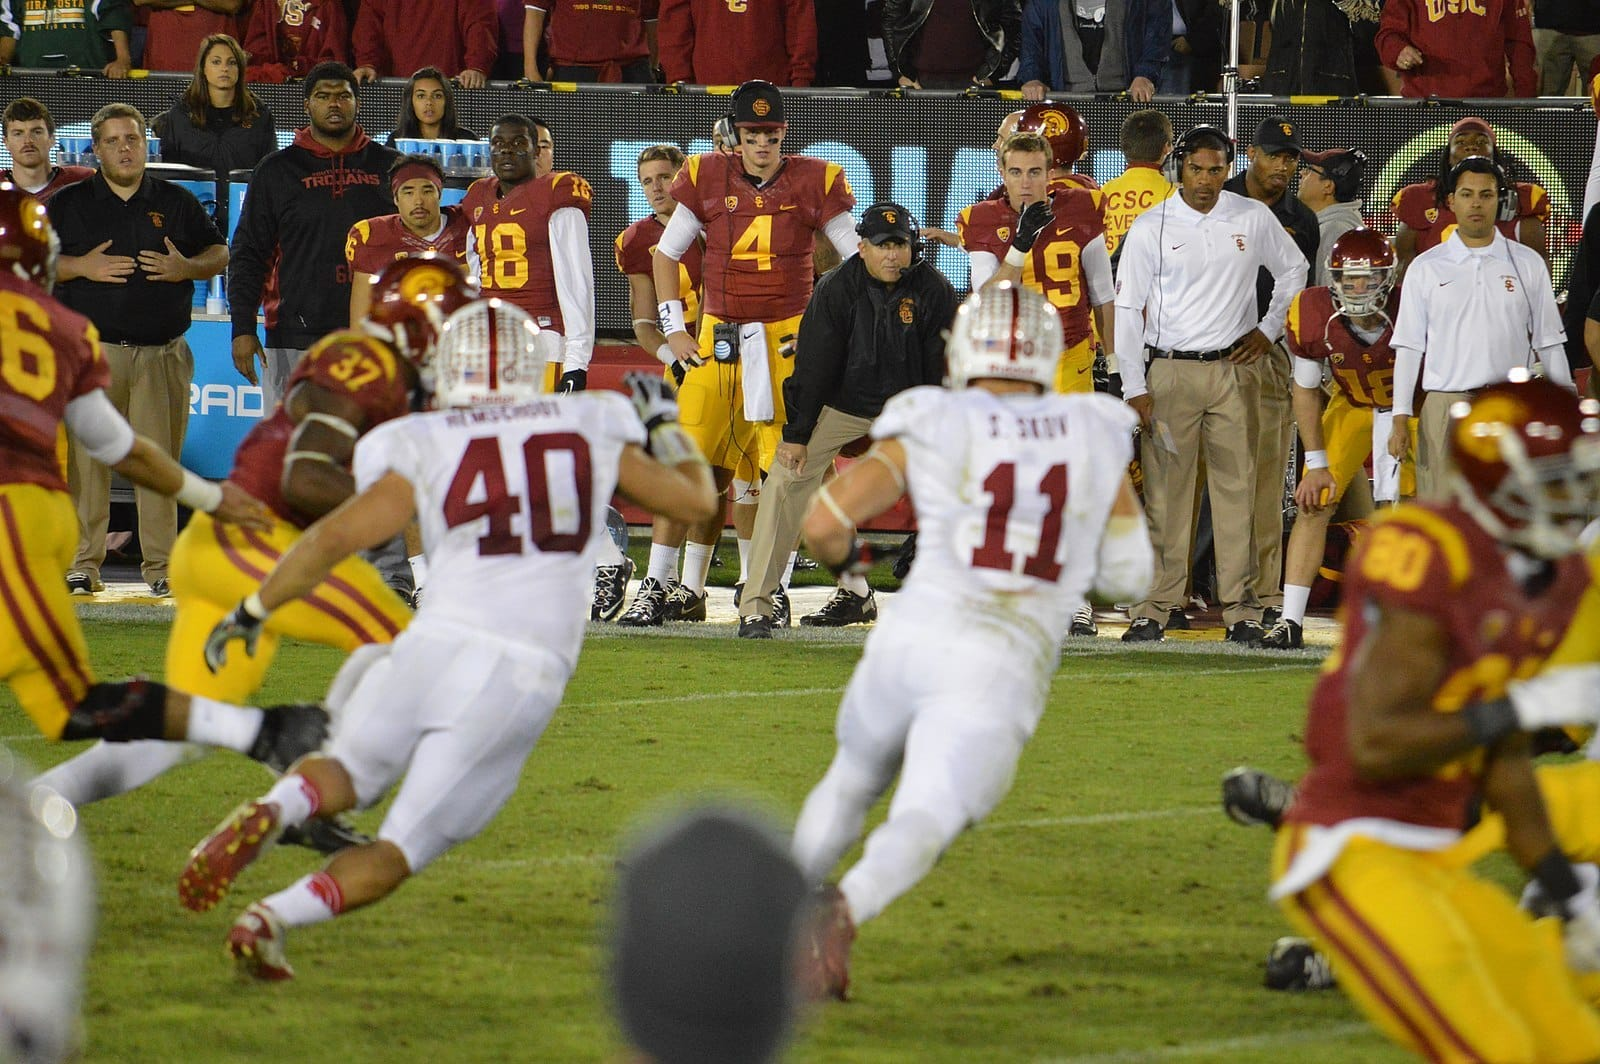 Is The Seat Of Clay Helton Hotter After Loss To BYU?